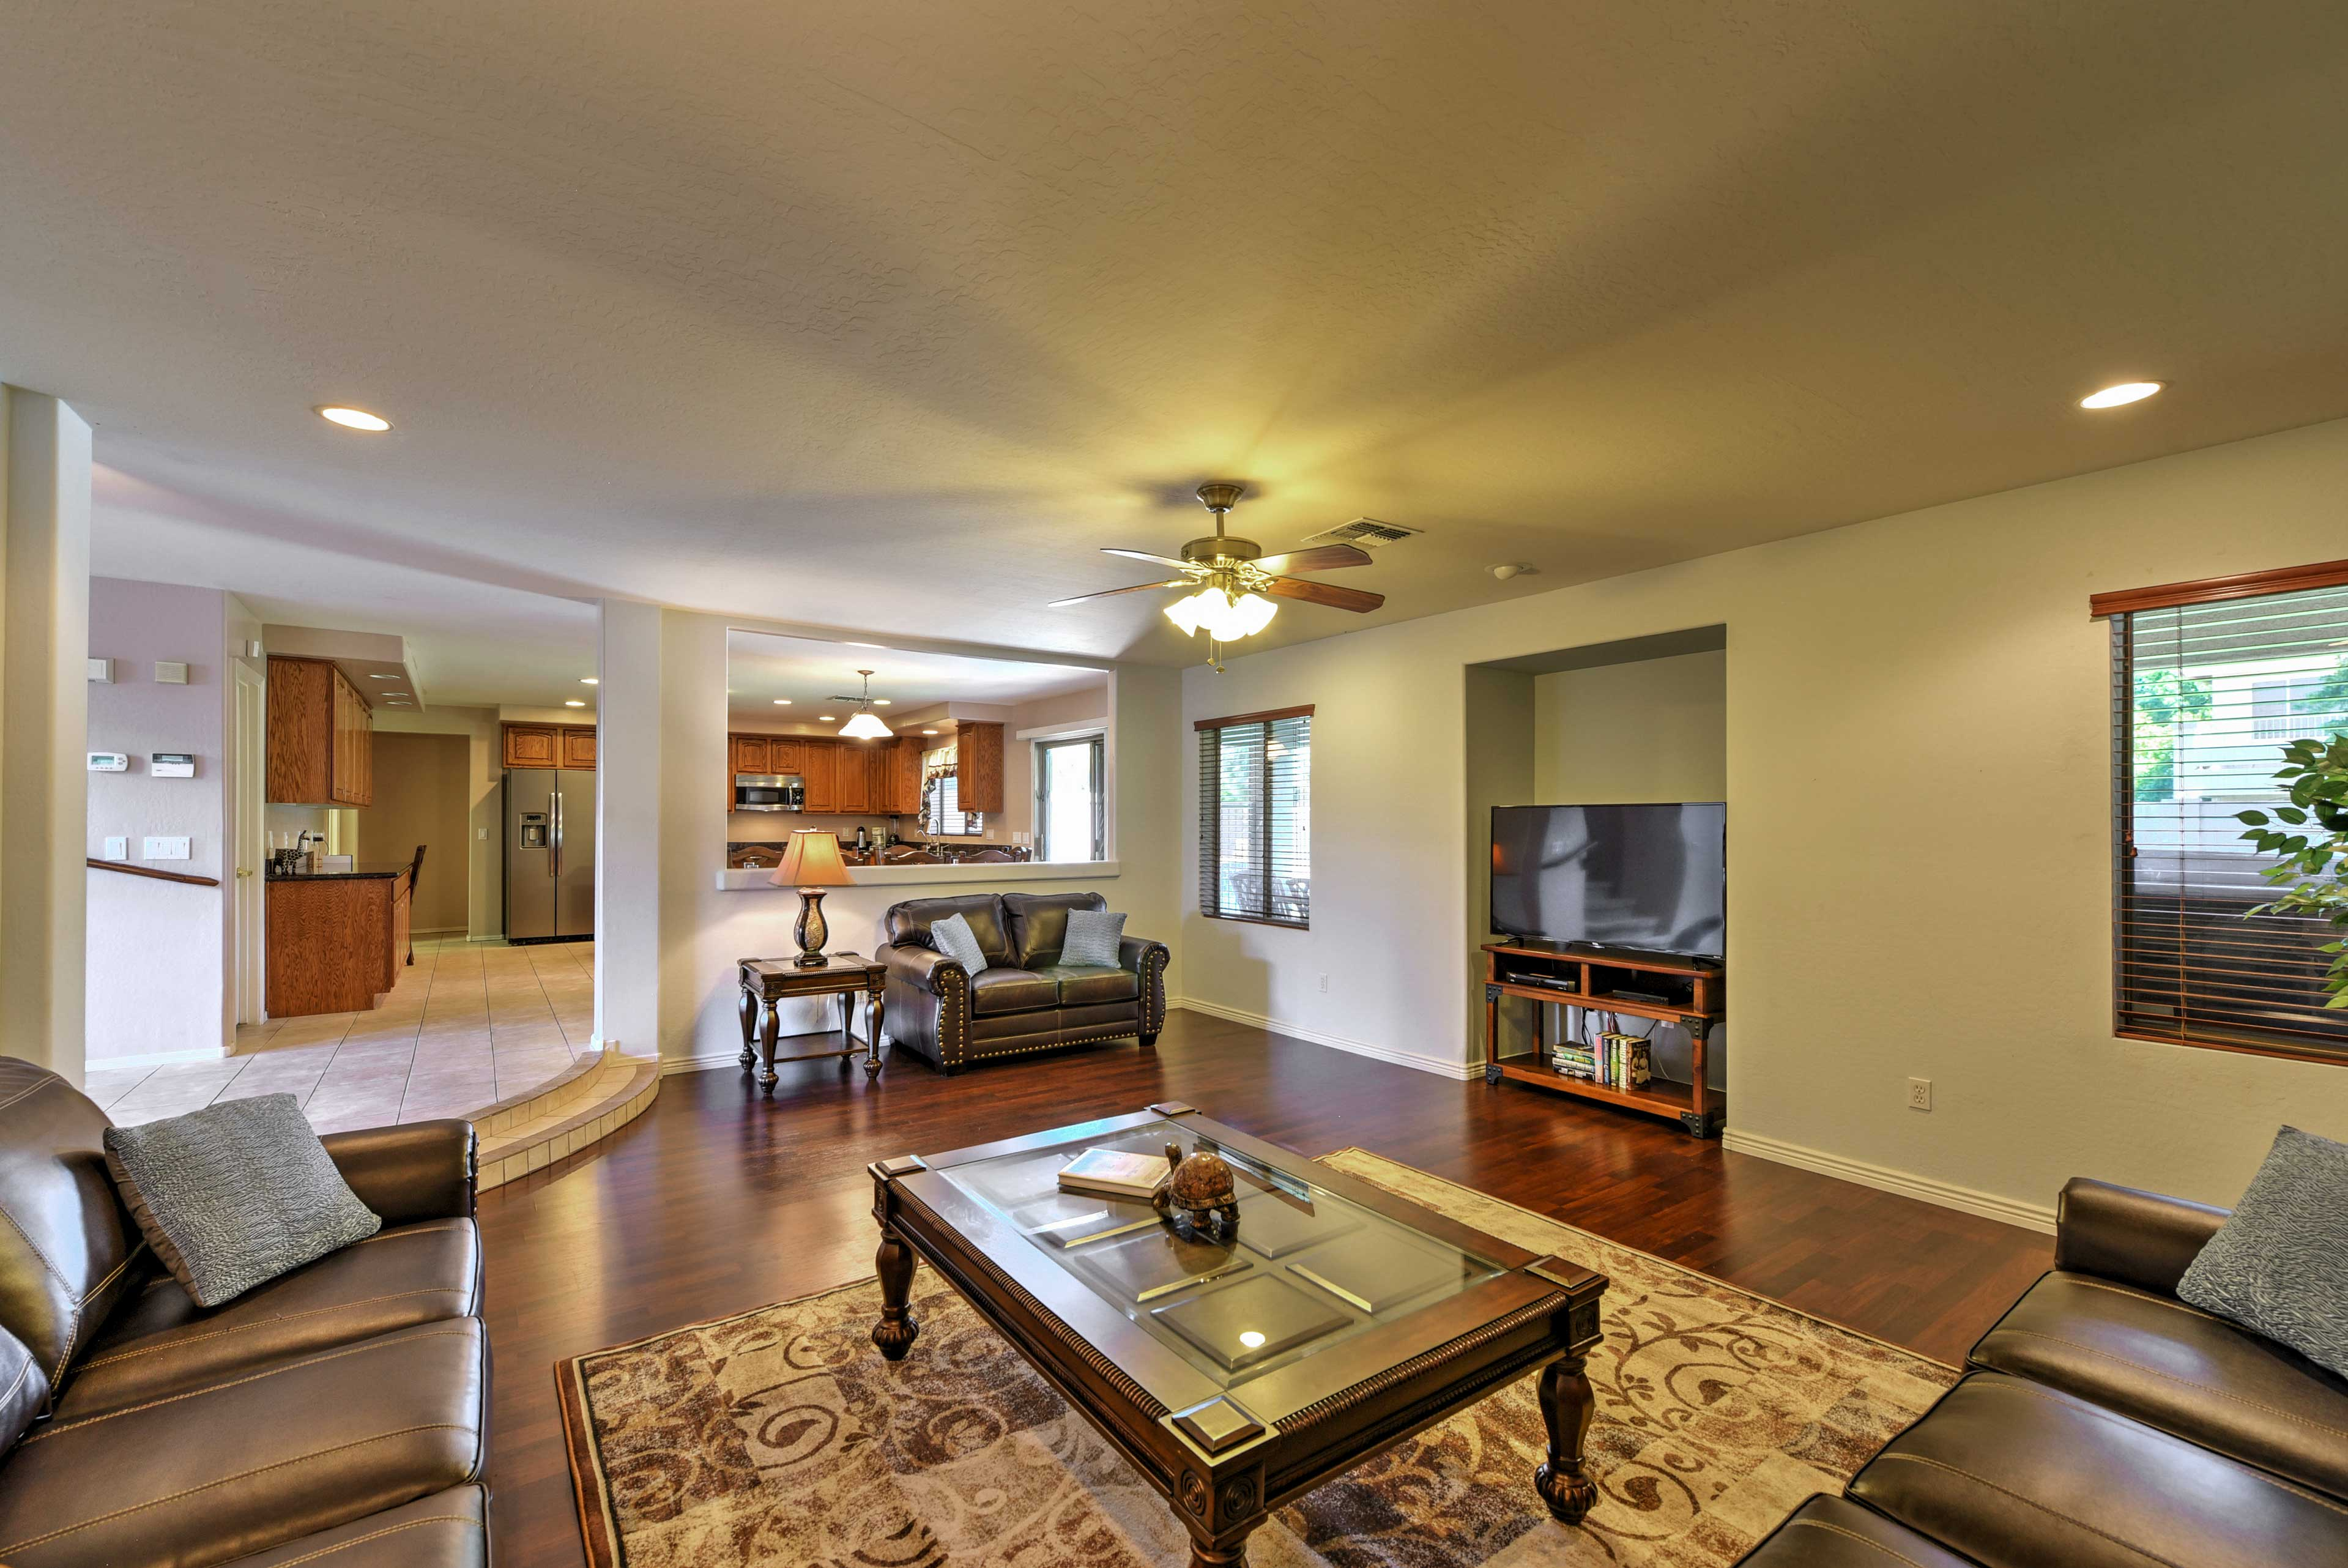 This Arizona home boasts 4,200 square feet of well-appointed living space.